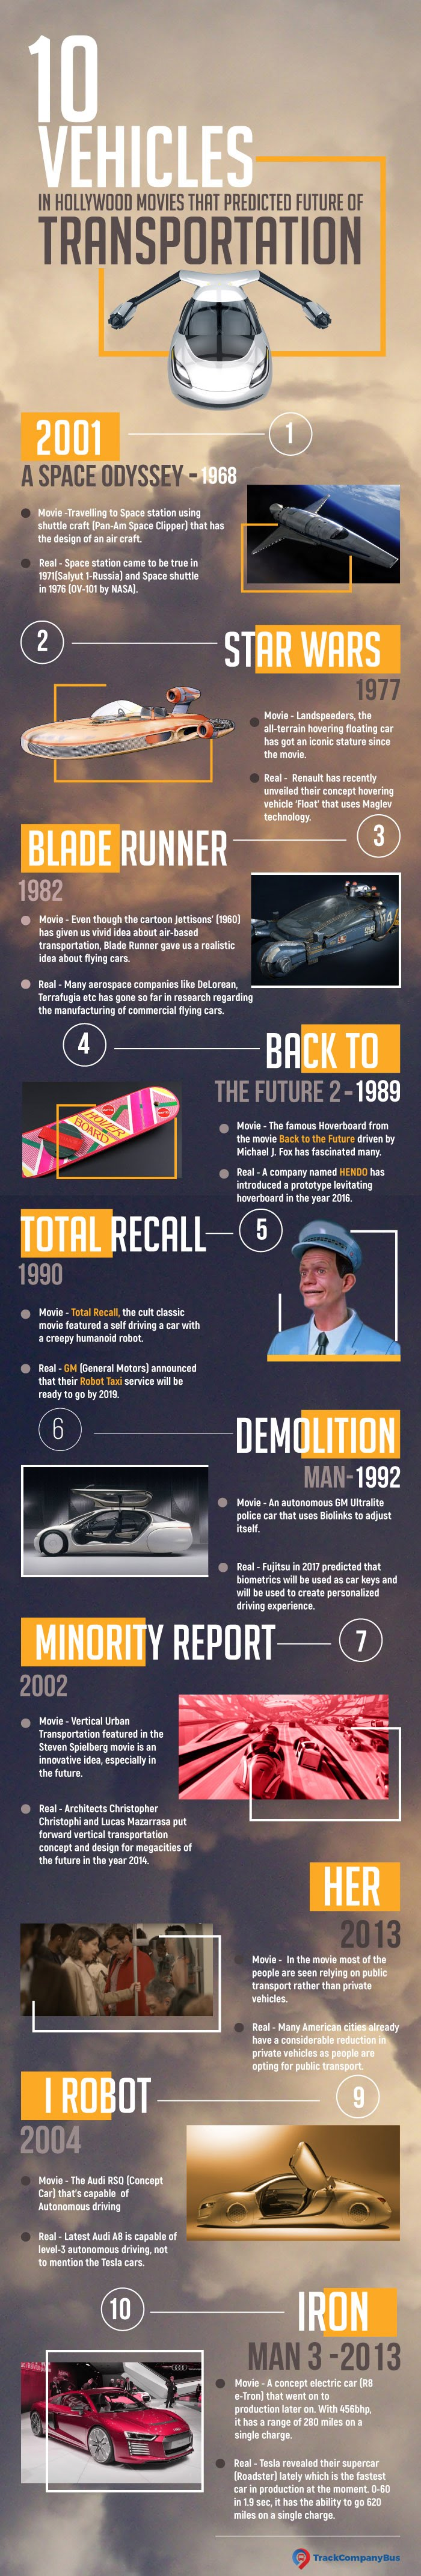 10 Vehicles In Movies That Predicted Future Of Transportation #infographic